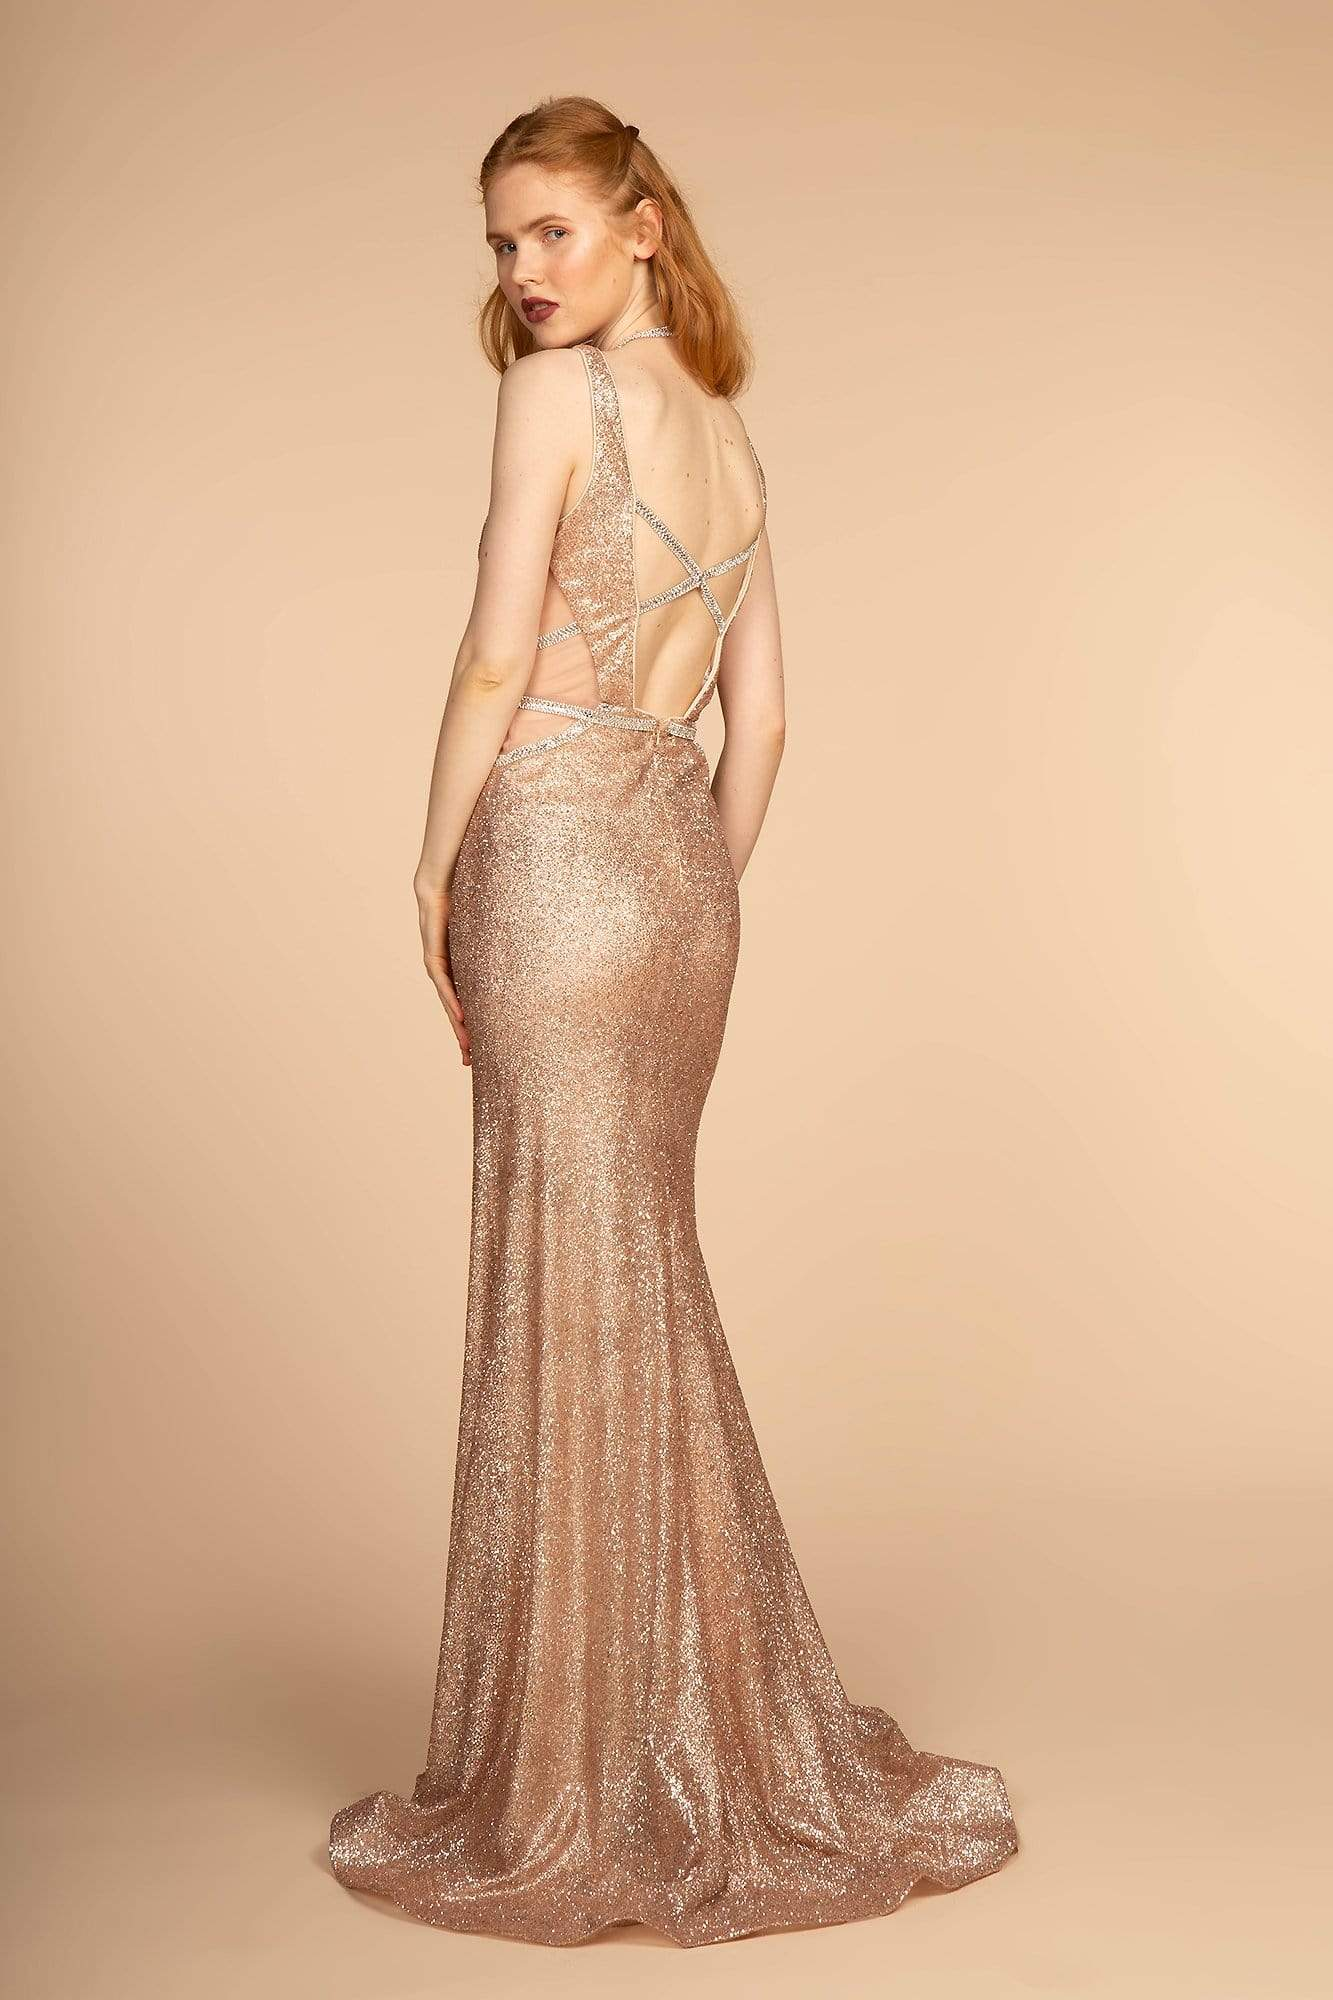 Elizabeth K - GL2509 Jeweled Halter Strap Glitter Long Gown Special Occasion Dress